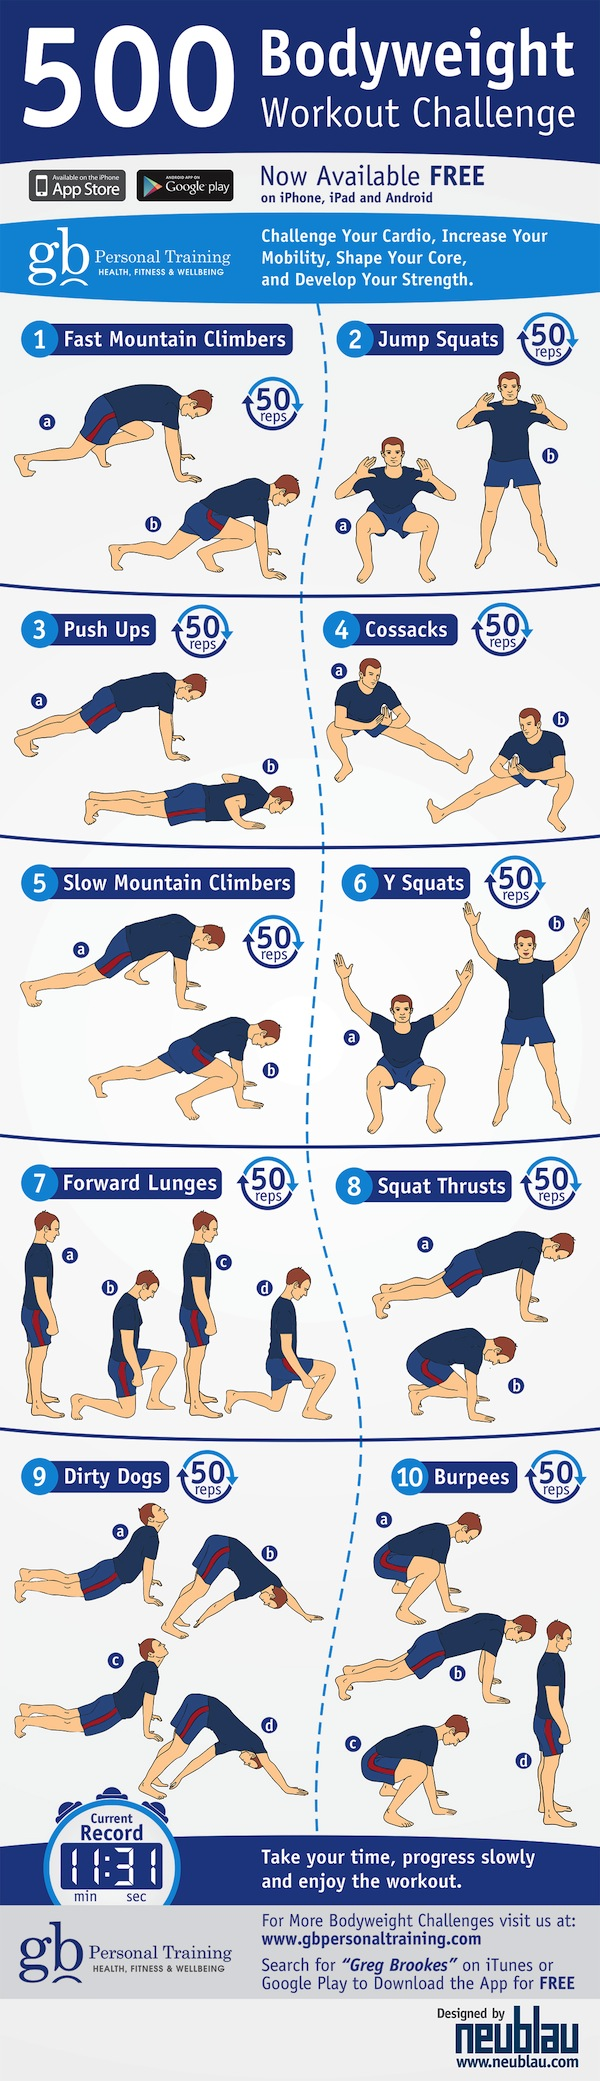 GBPT_500_Bodyweight_Challenge_infographic